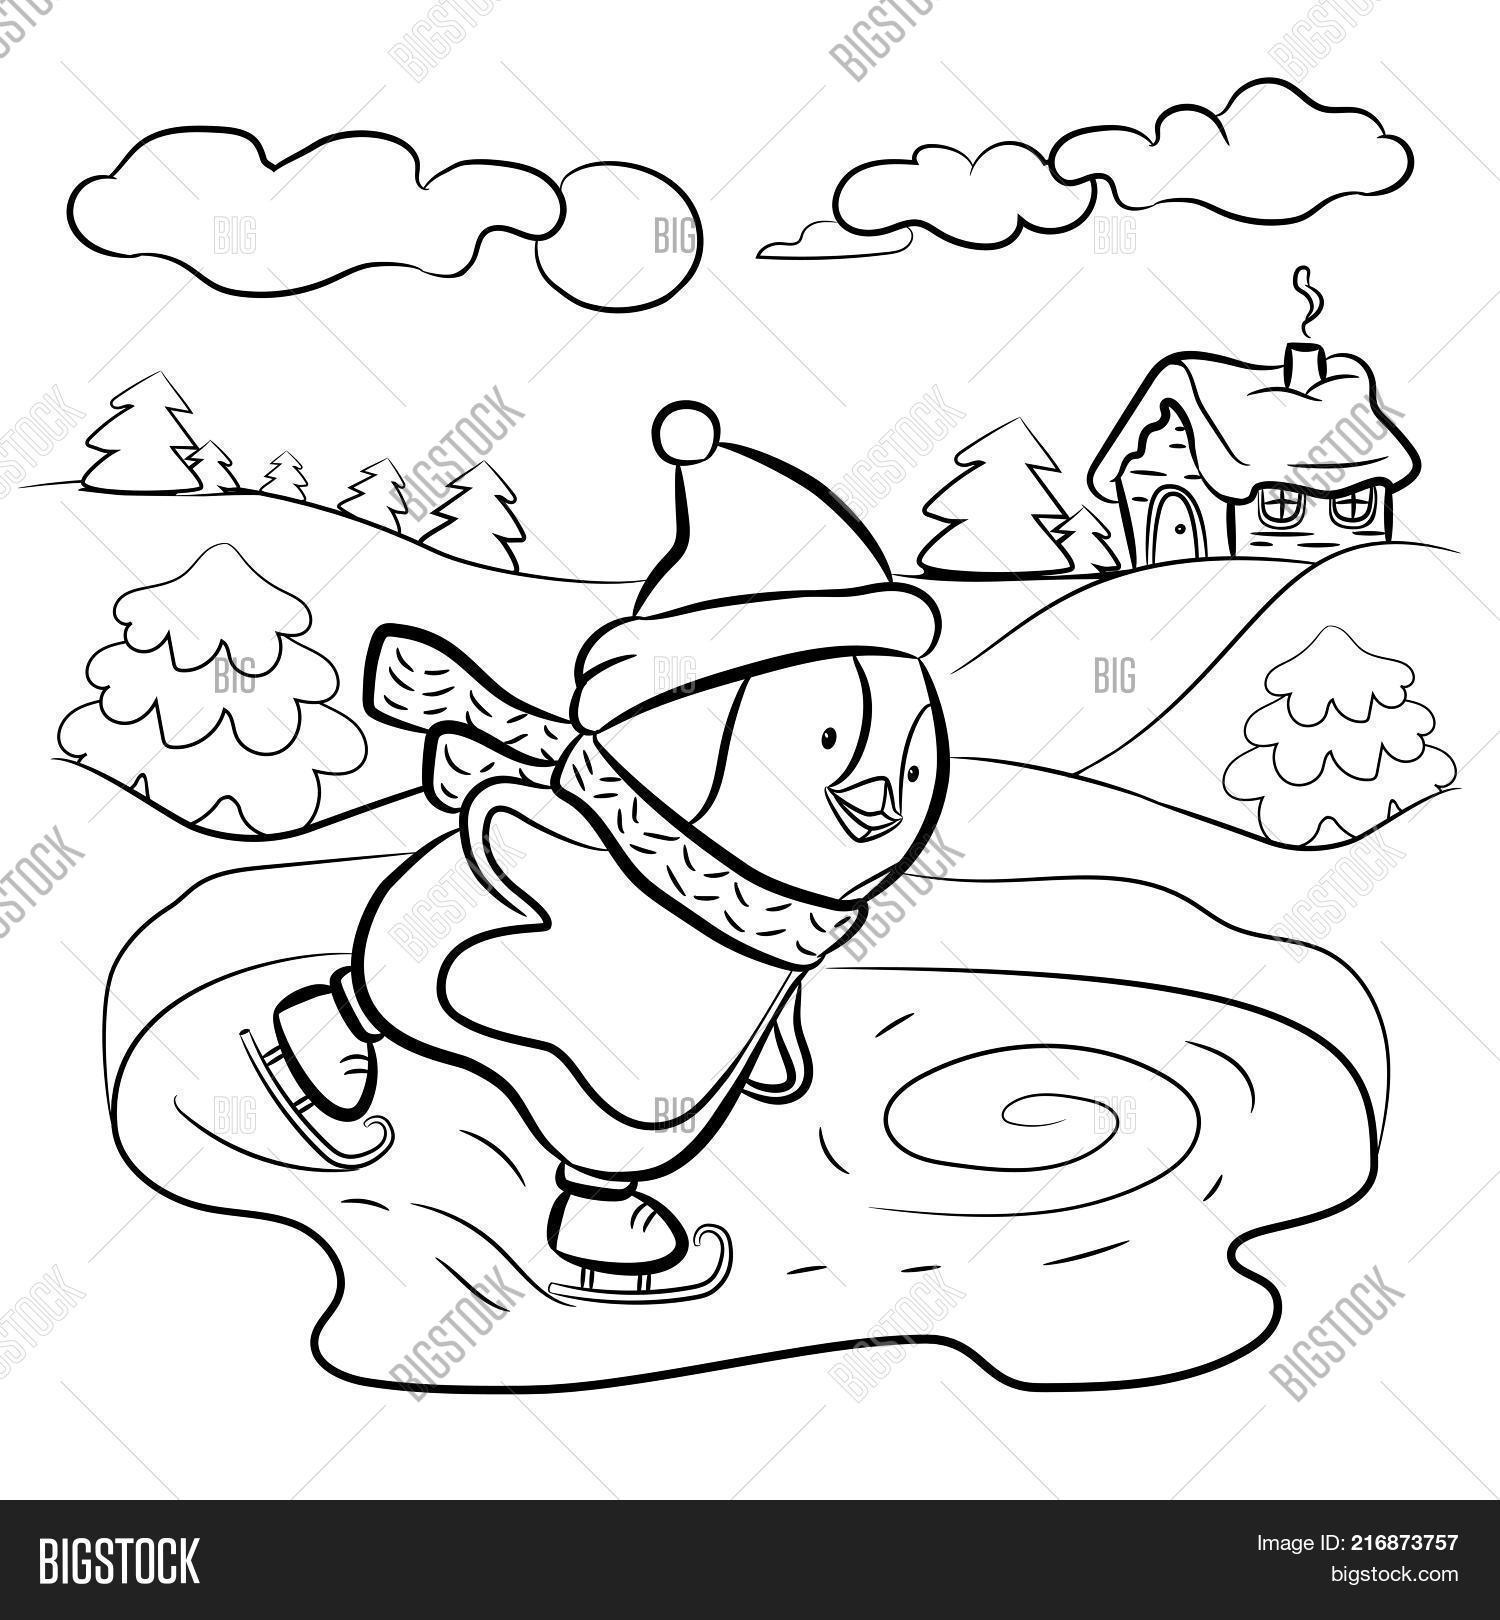 Kids Coloring Page Image Amp Photo Free Trial